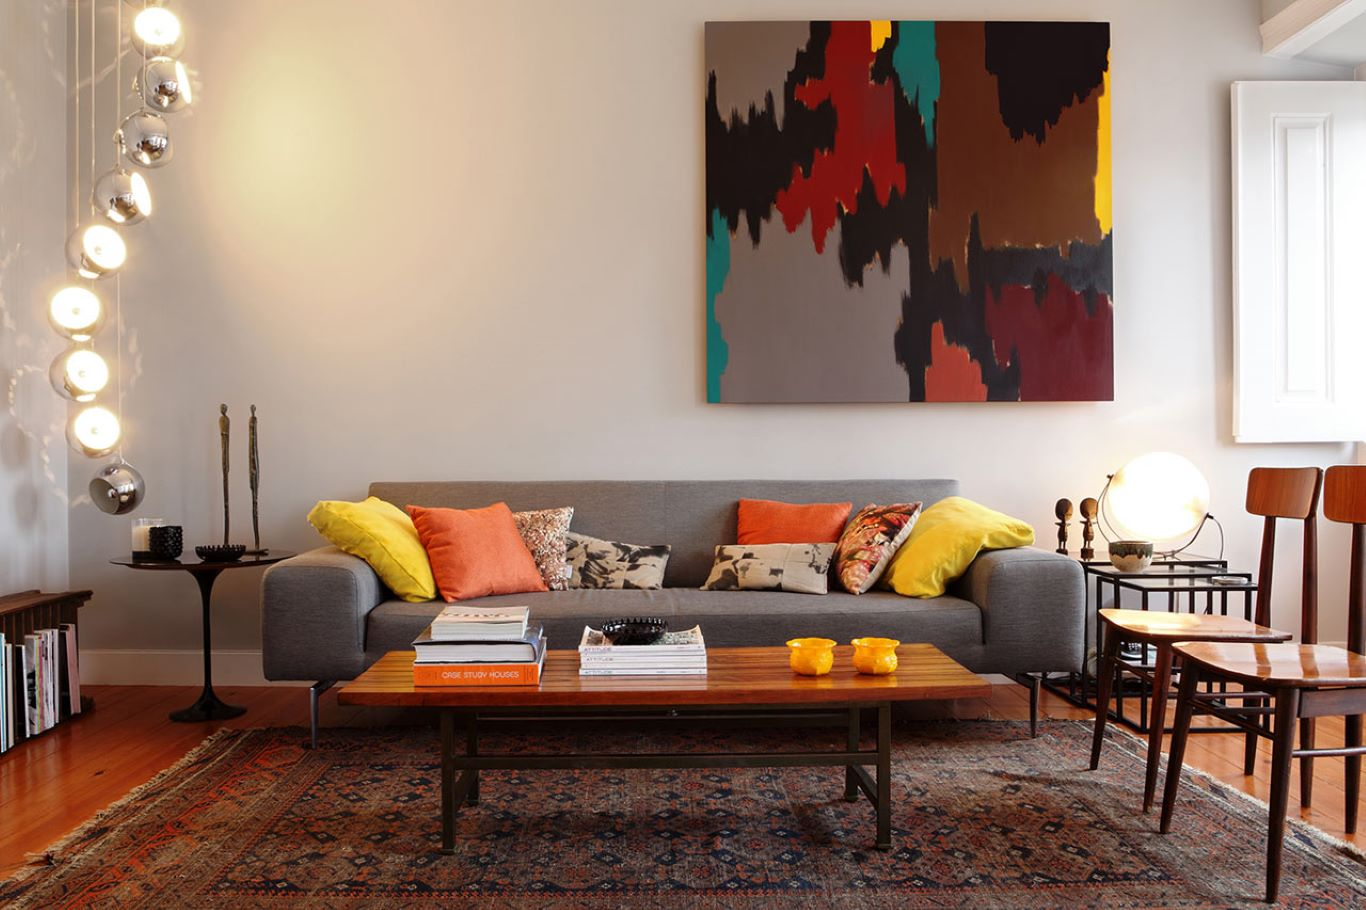 Colorful abstract decoratives in a Retro style interior